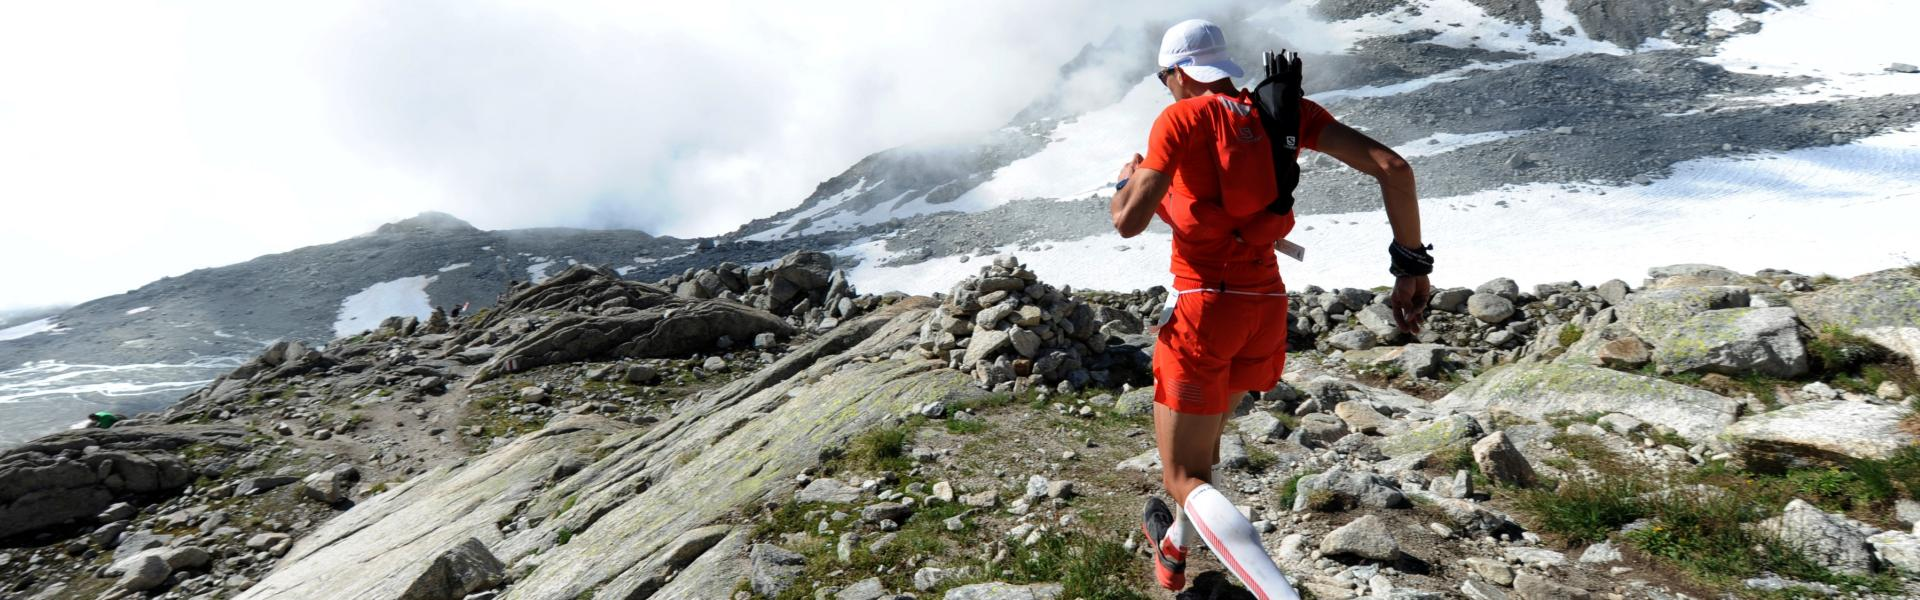 Jules-Henri Gabioud running down a Valais mountain. trail running Valais Wallis Schweiz Suisse